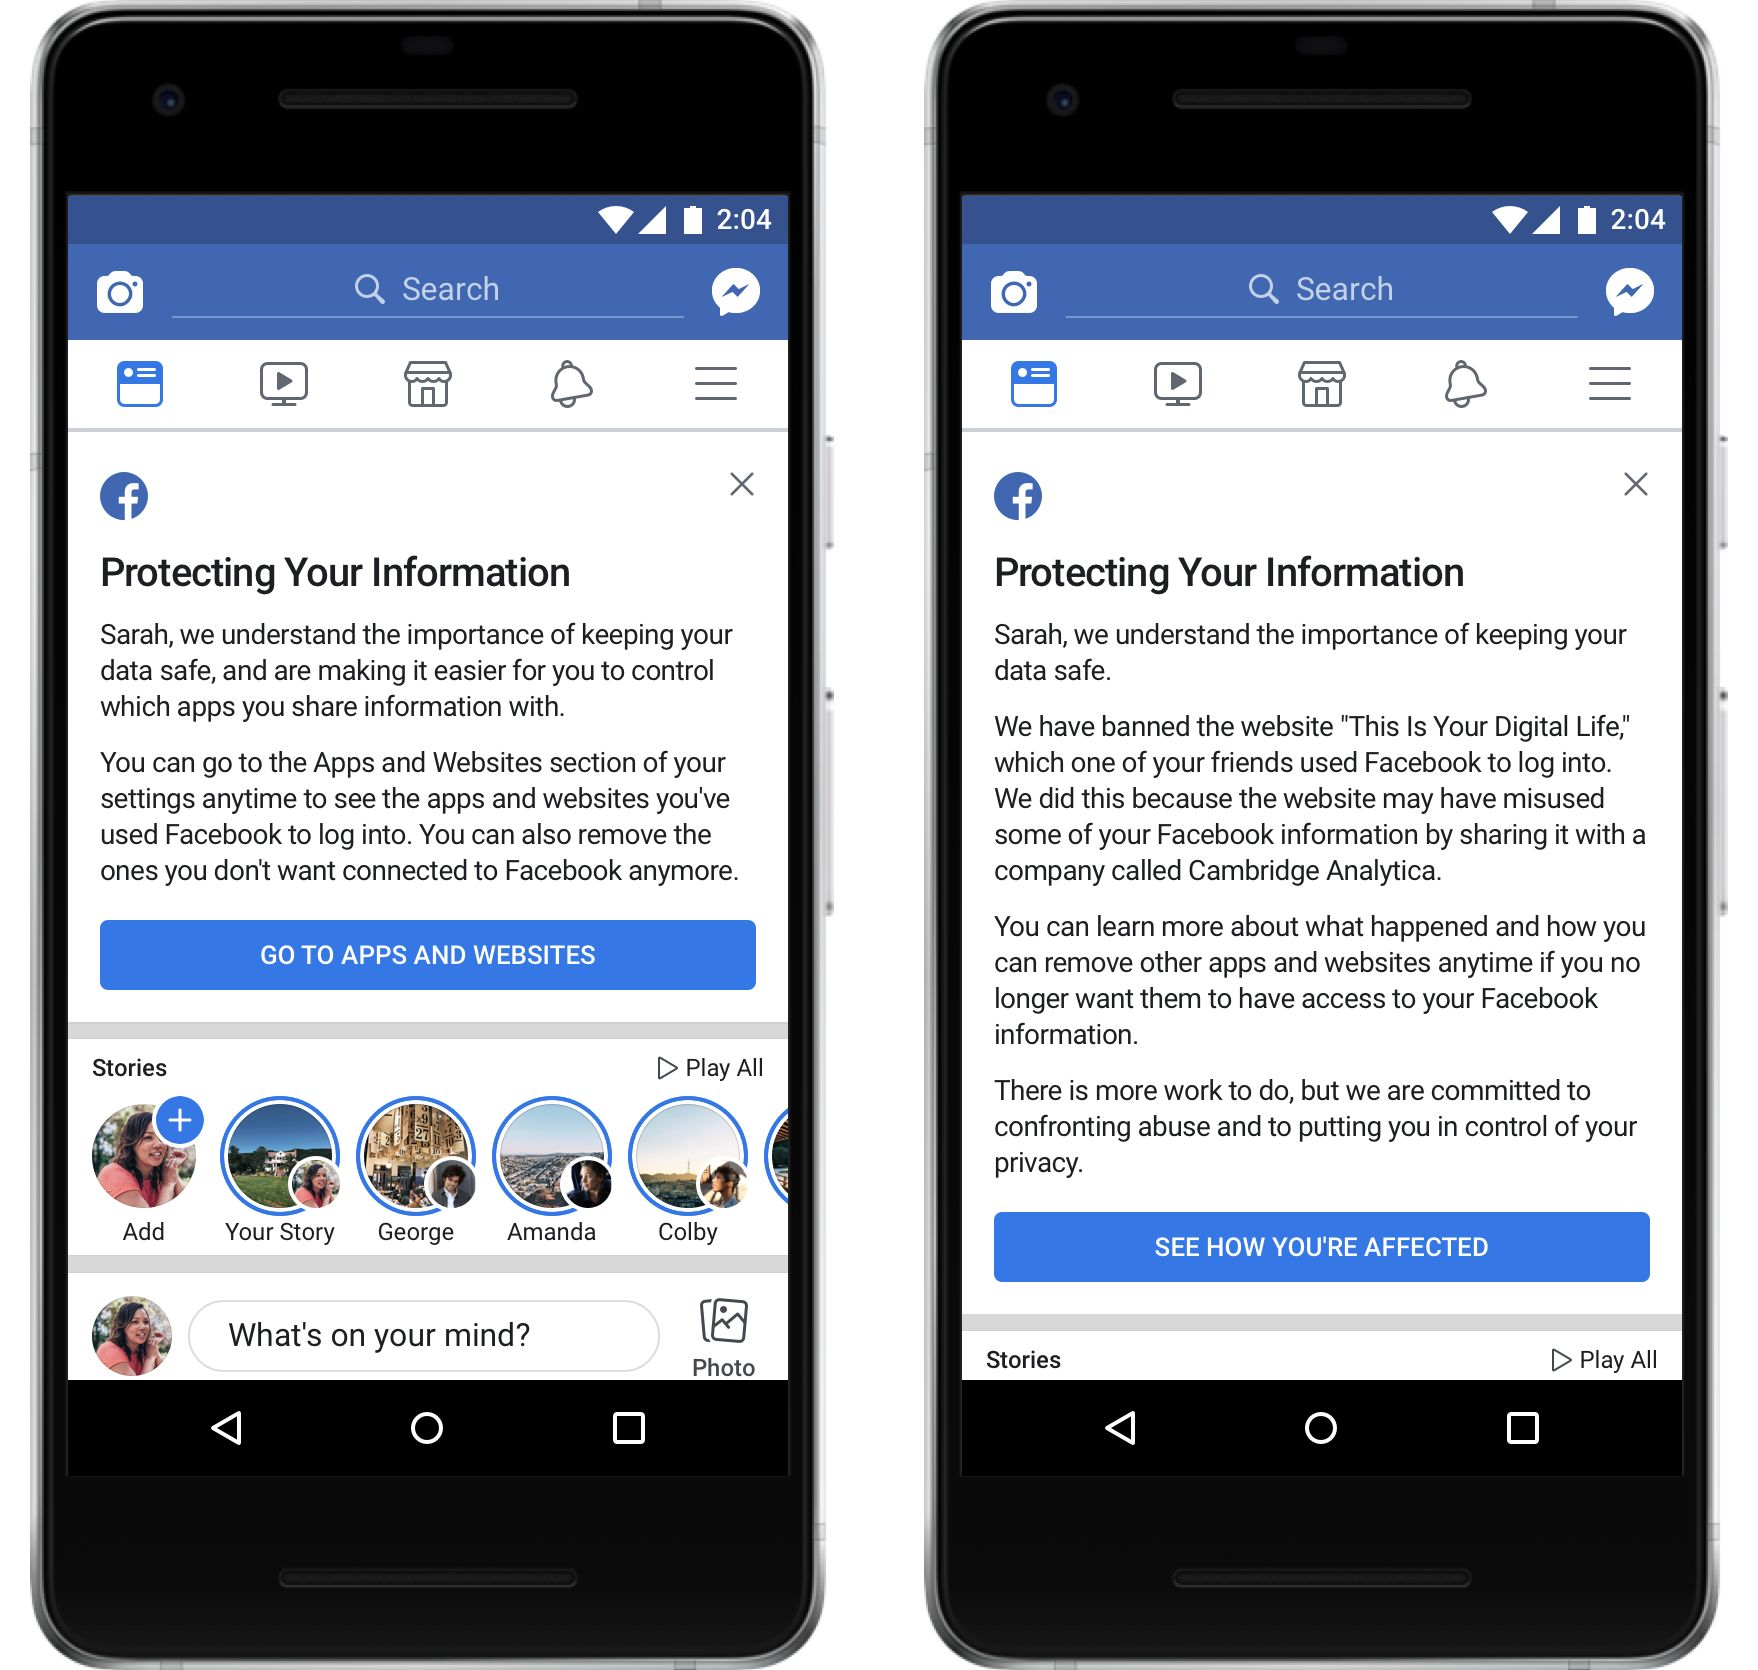 Facebook has started rolling out two custom mes